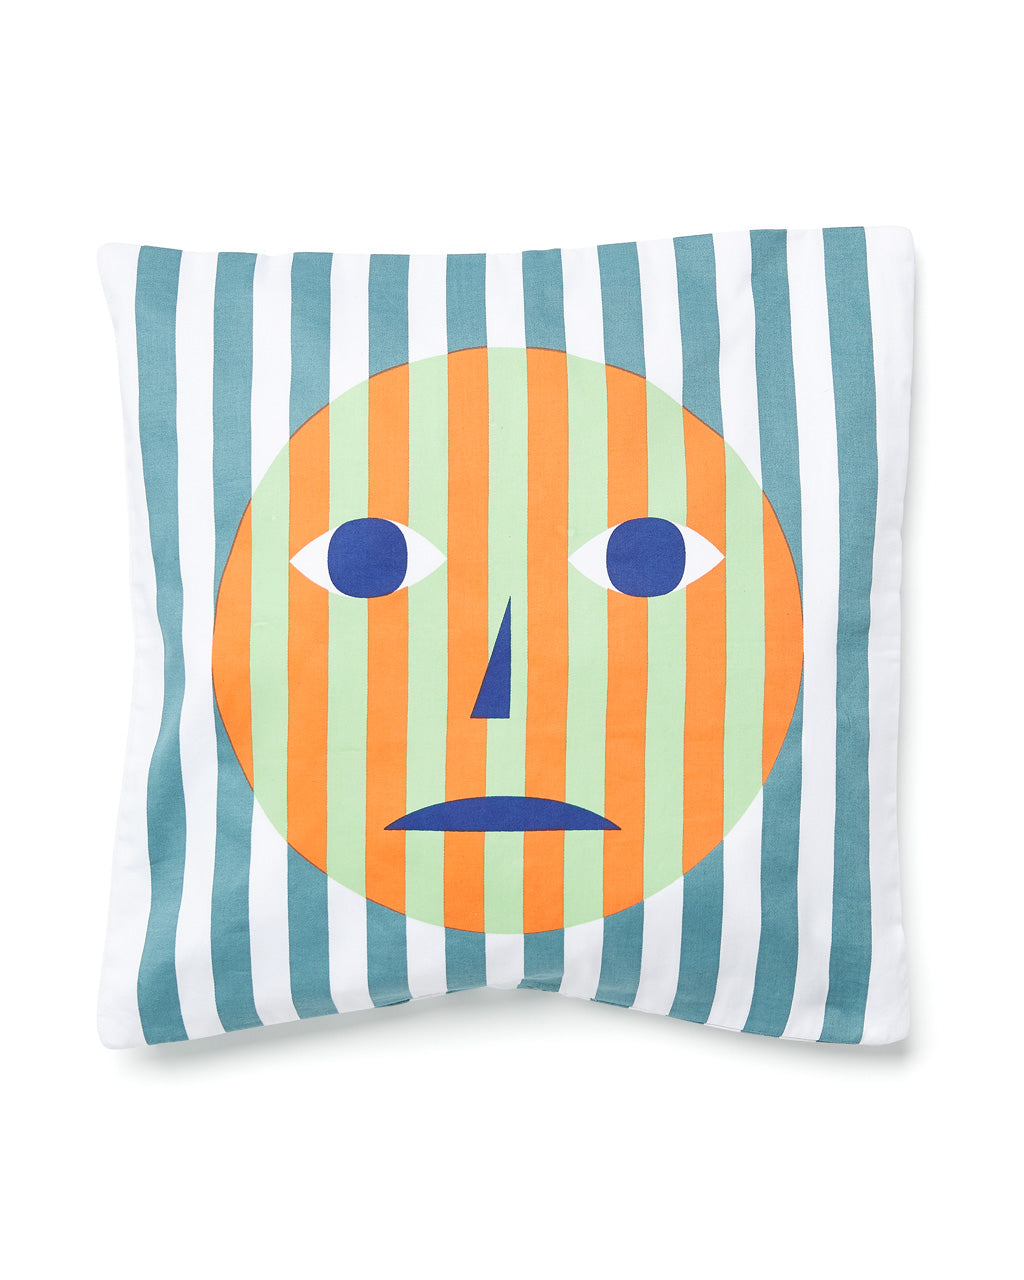 Sad face screen printed pillow with vertical blue stripes.